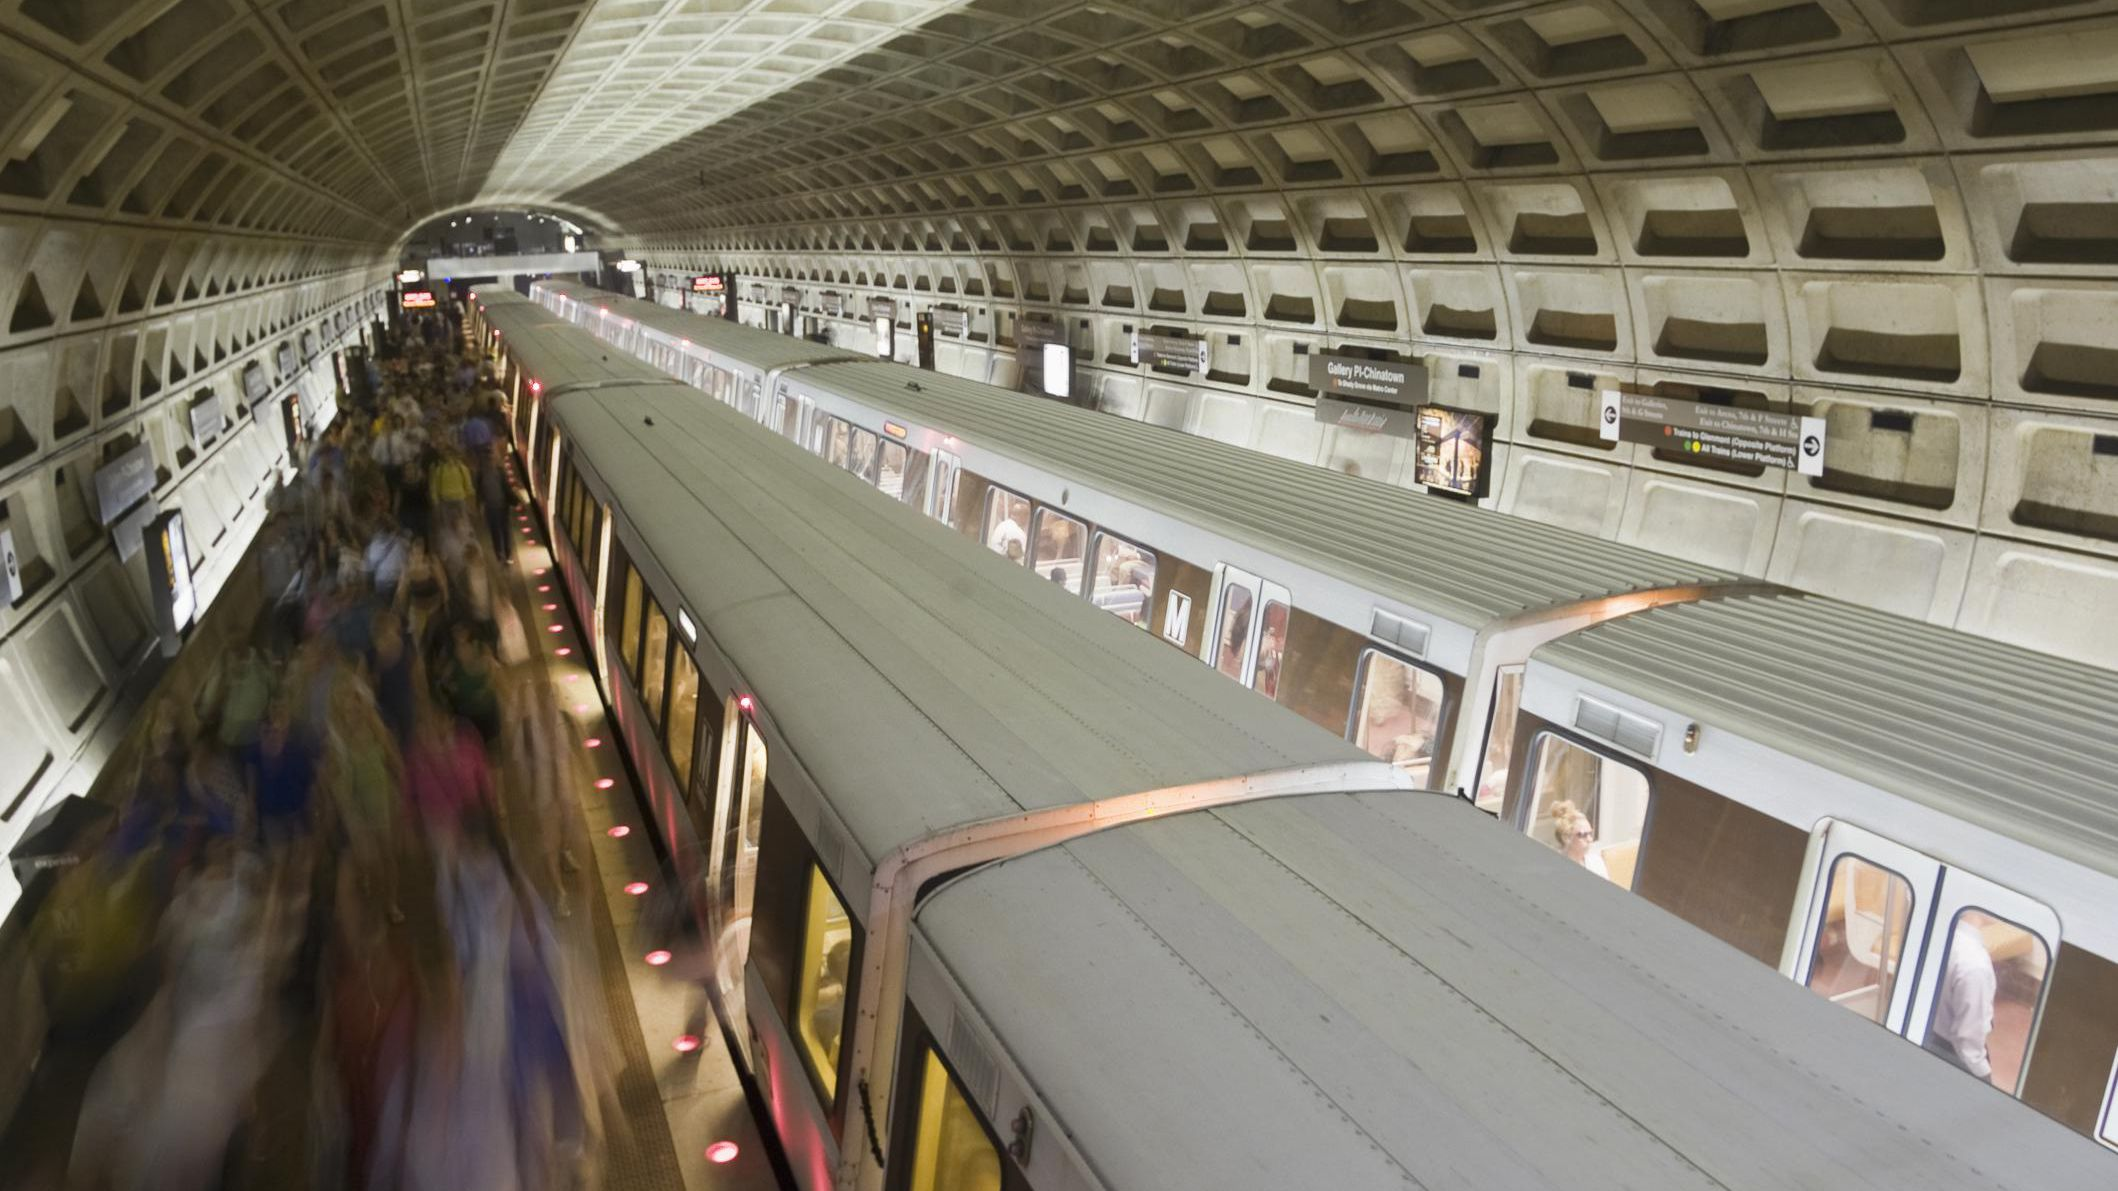 The Best Metro Stations for Sightseeing in Washington DC